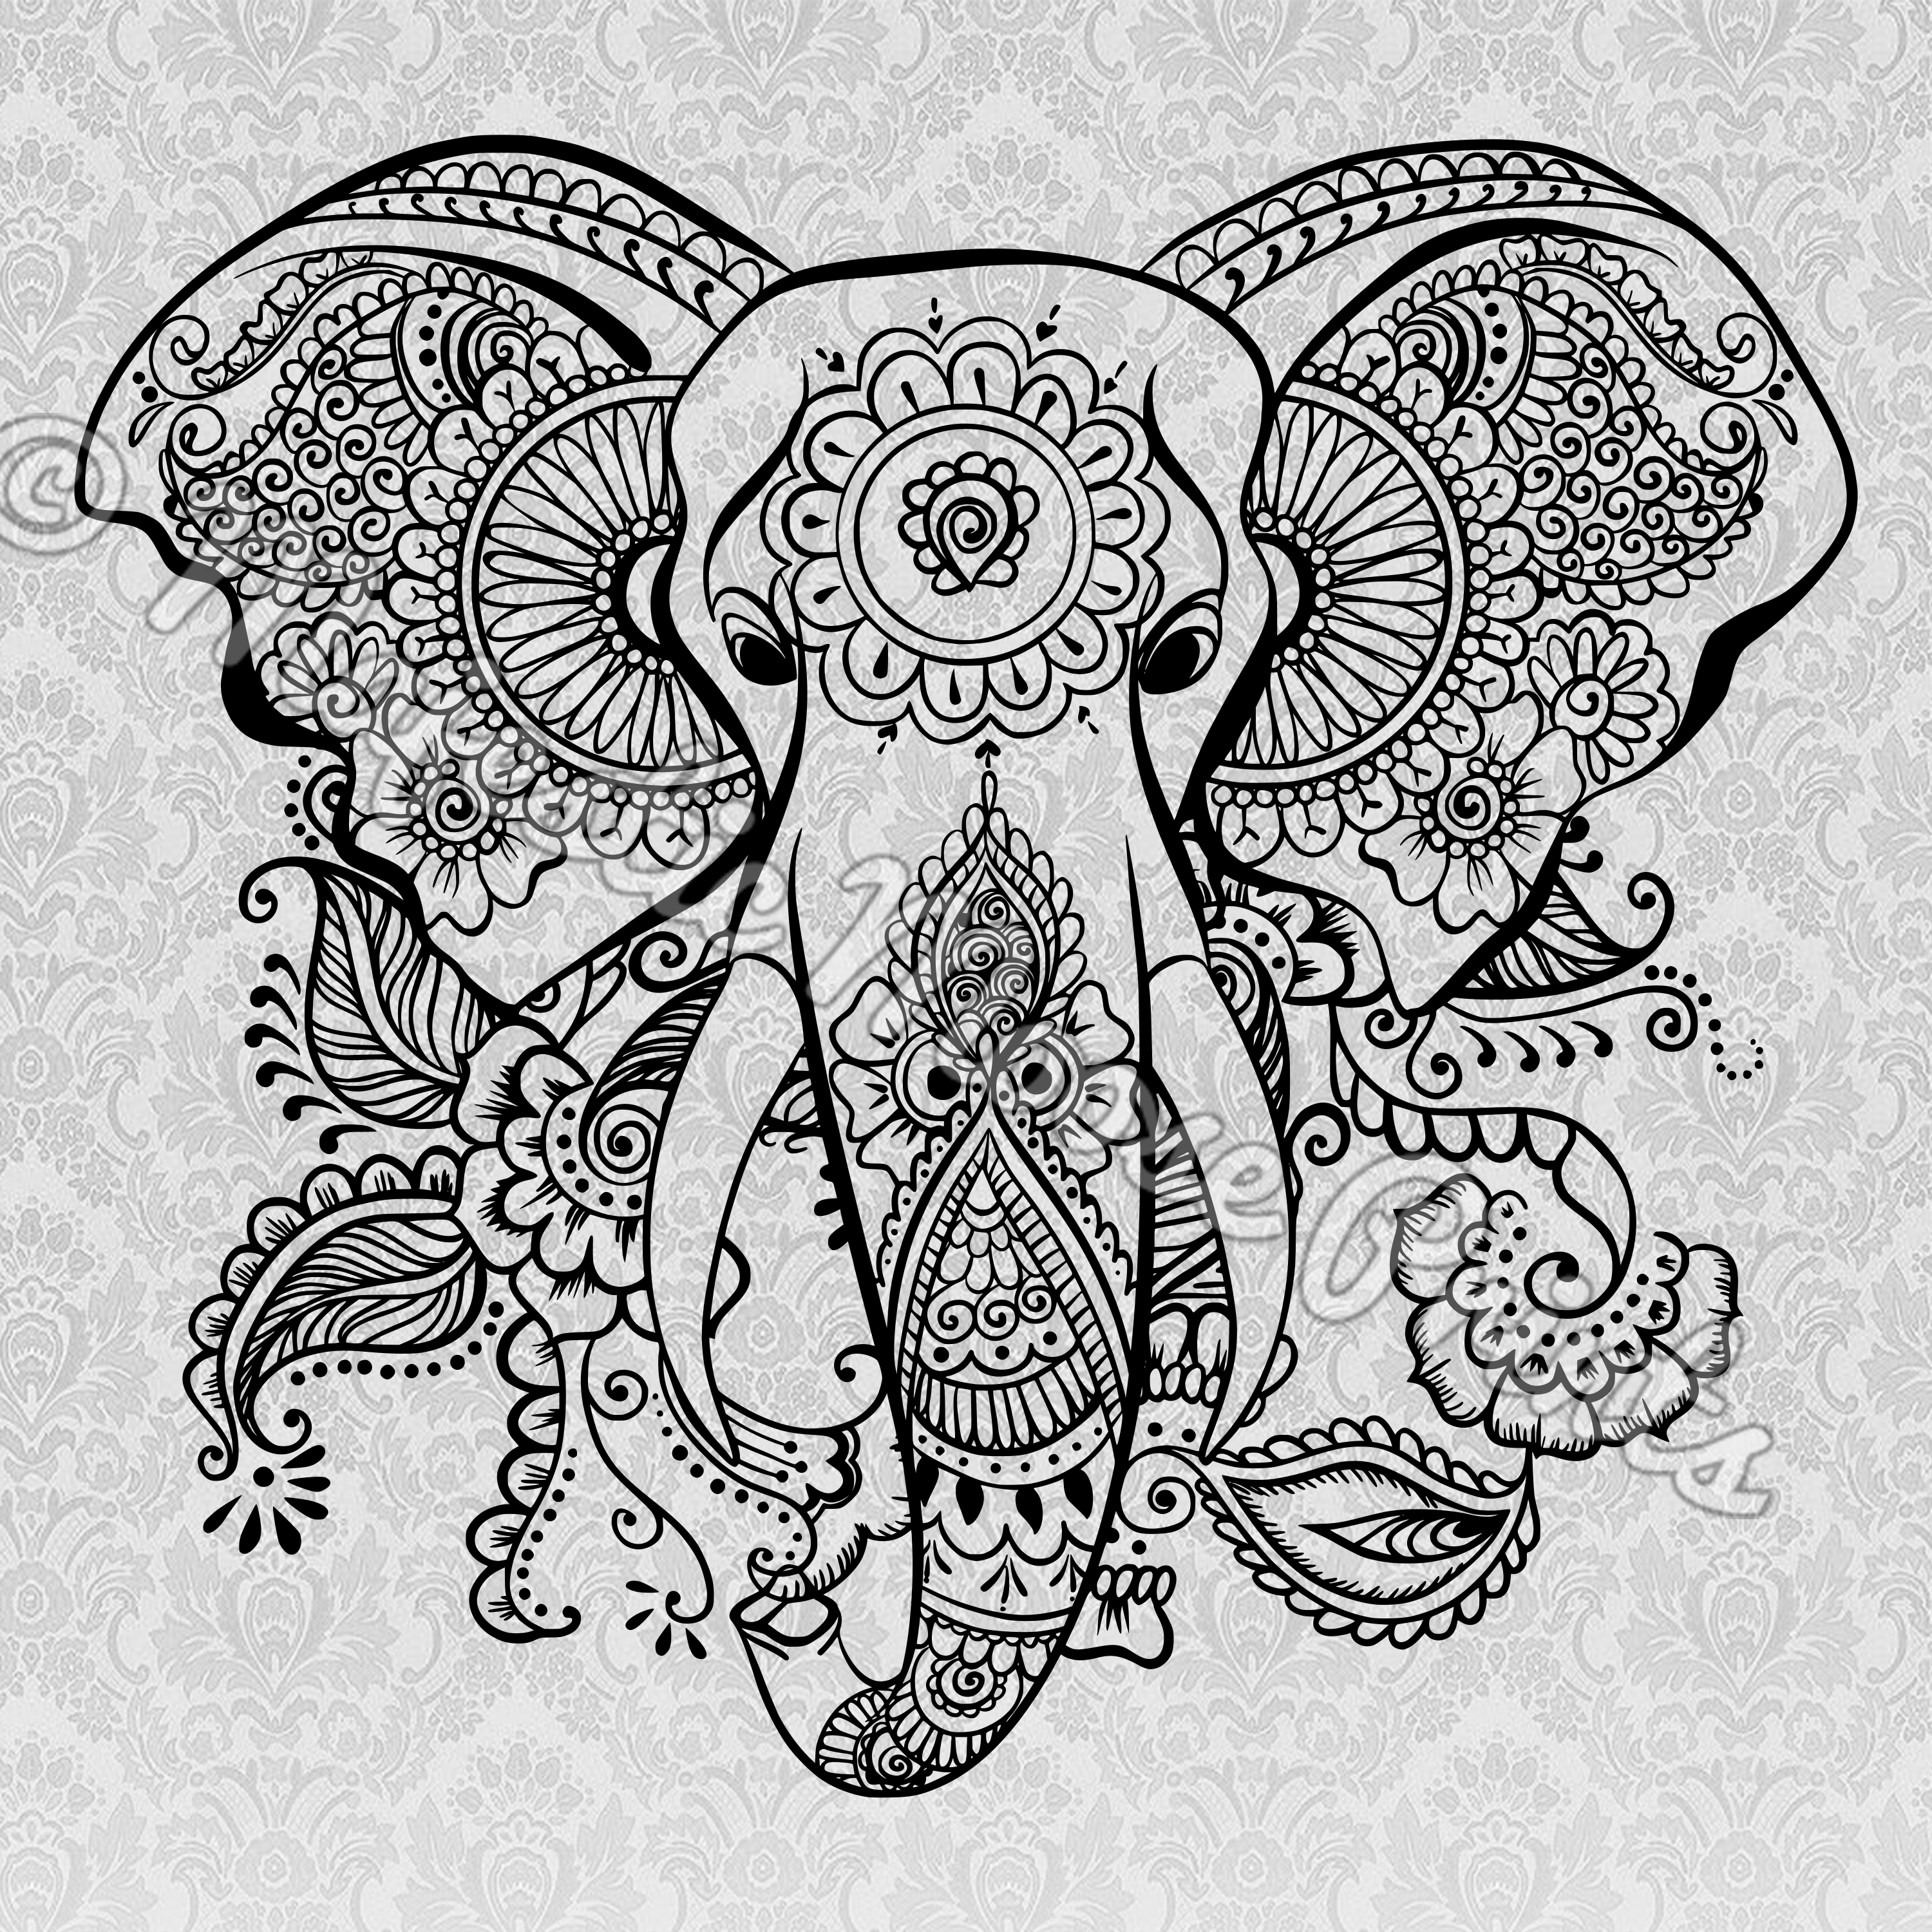 clip art royalty free download Majestic moose elephant svg. Drawing prints tribal